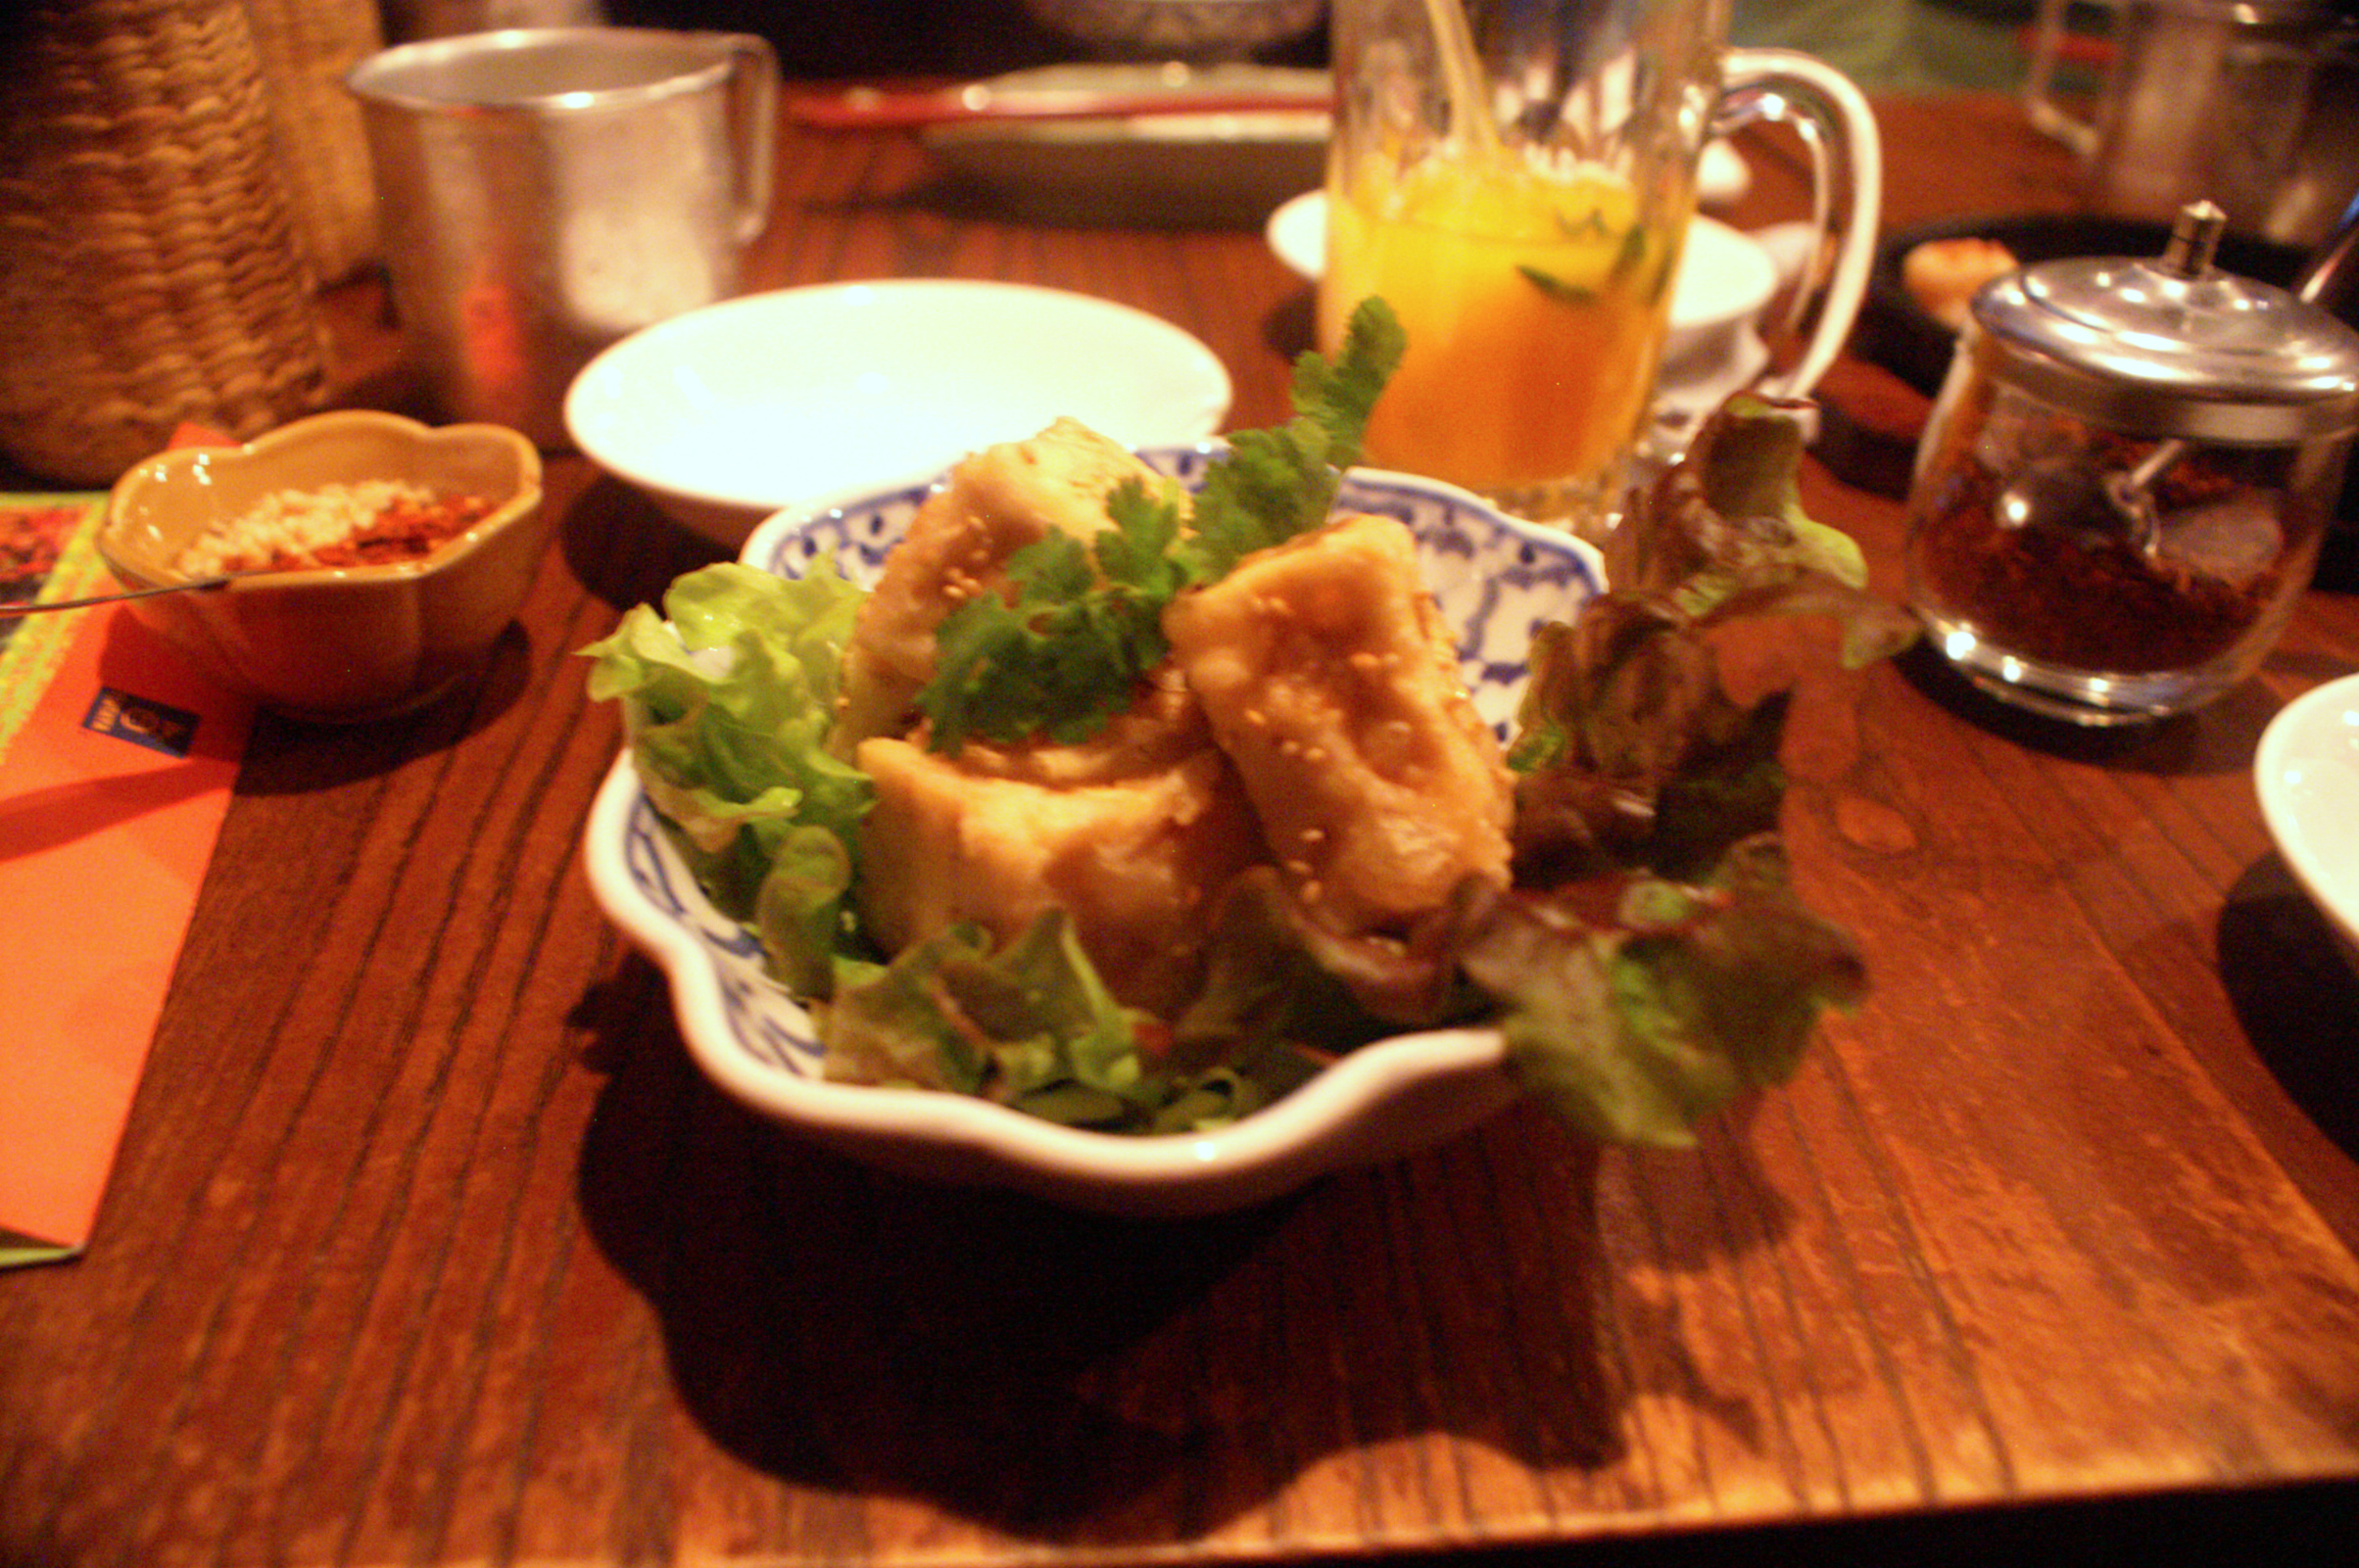 Meal at a Thai restaurant in Tokyo